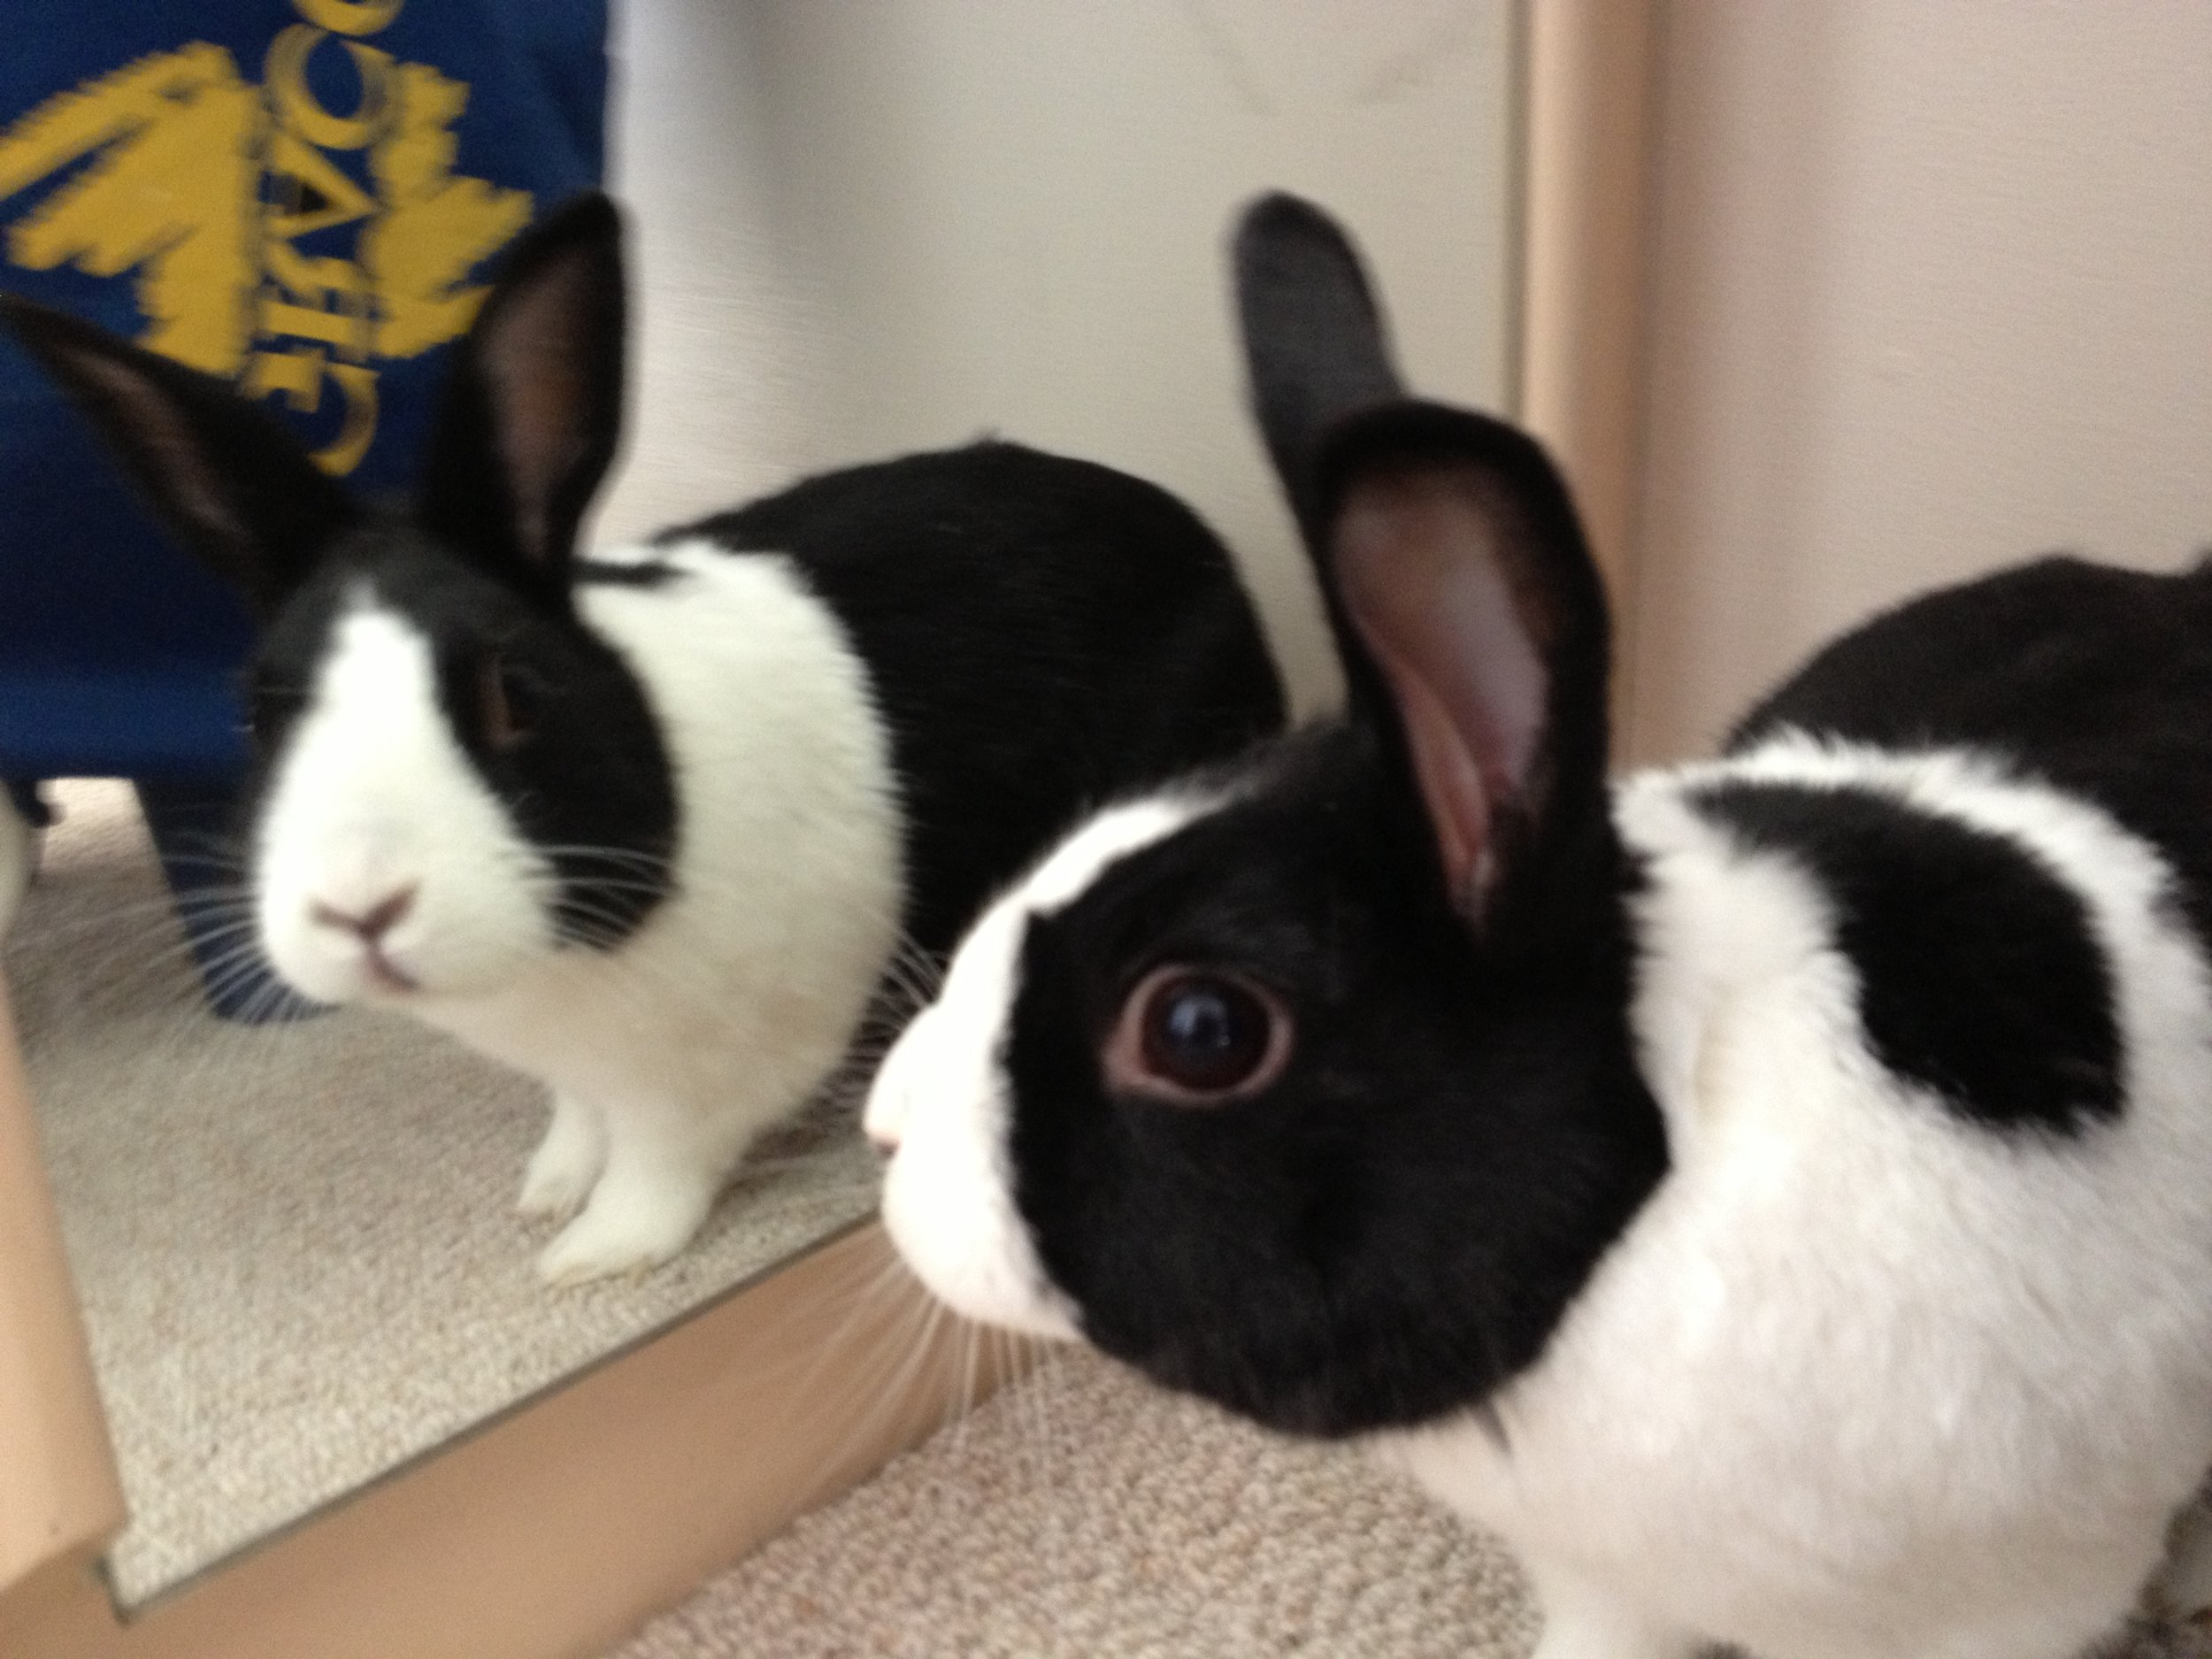 Bunny Is Suddenly Distracted by the Sight of a Very Handsome Bun